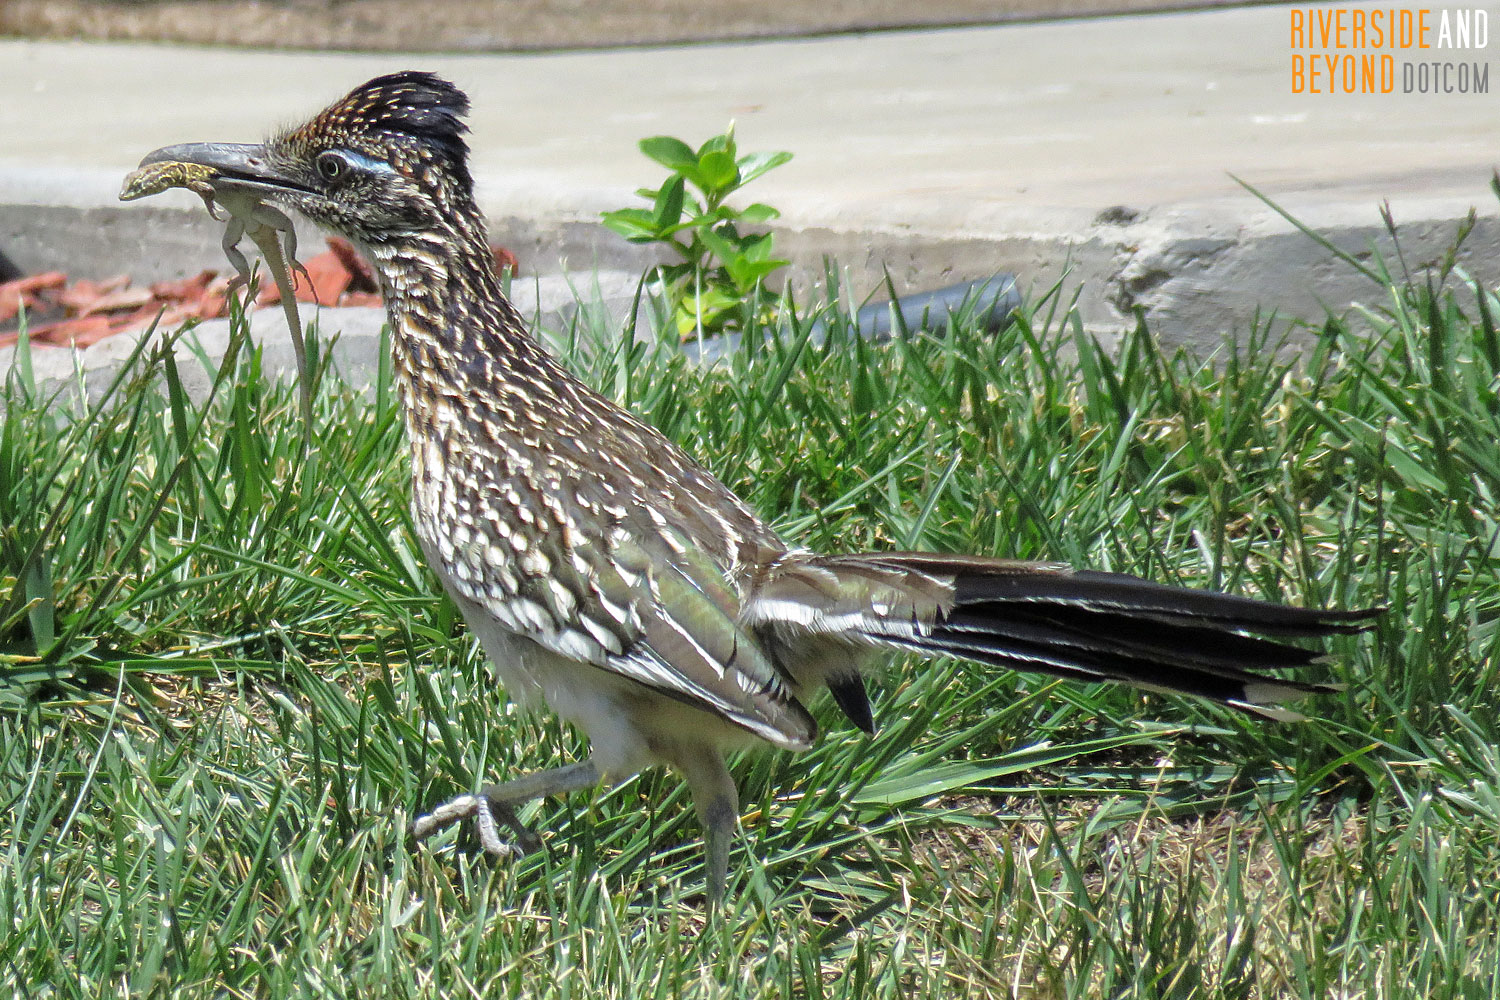 Roadrunner with a Lizard Lunch